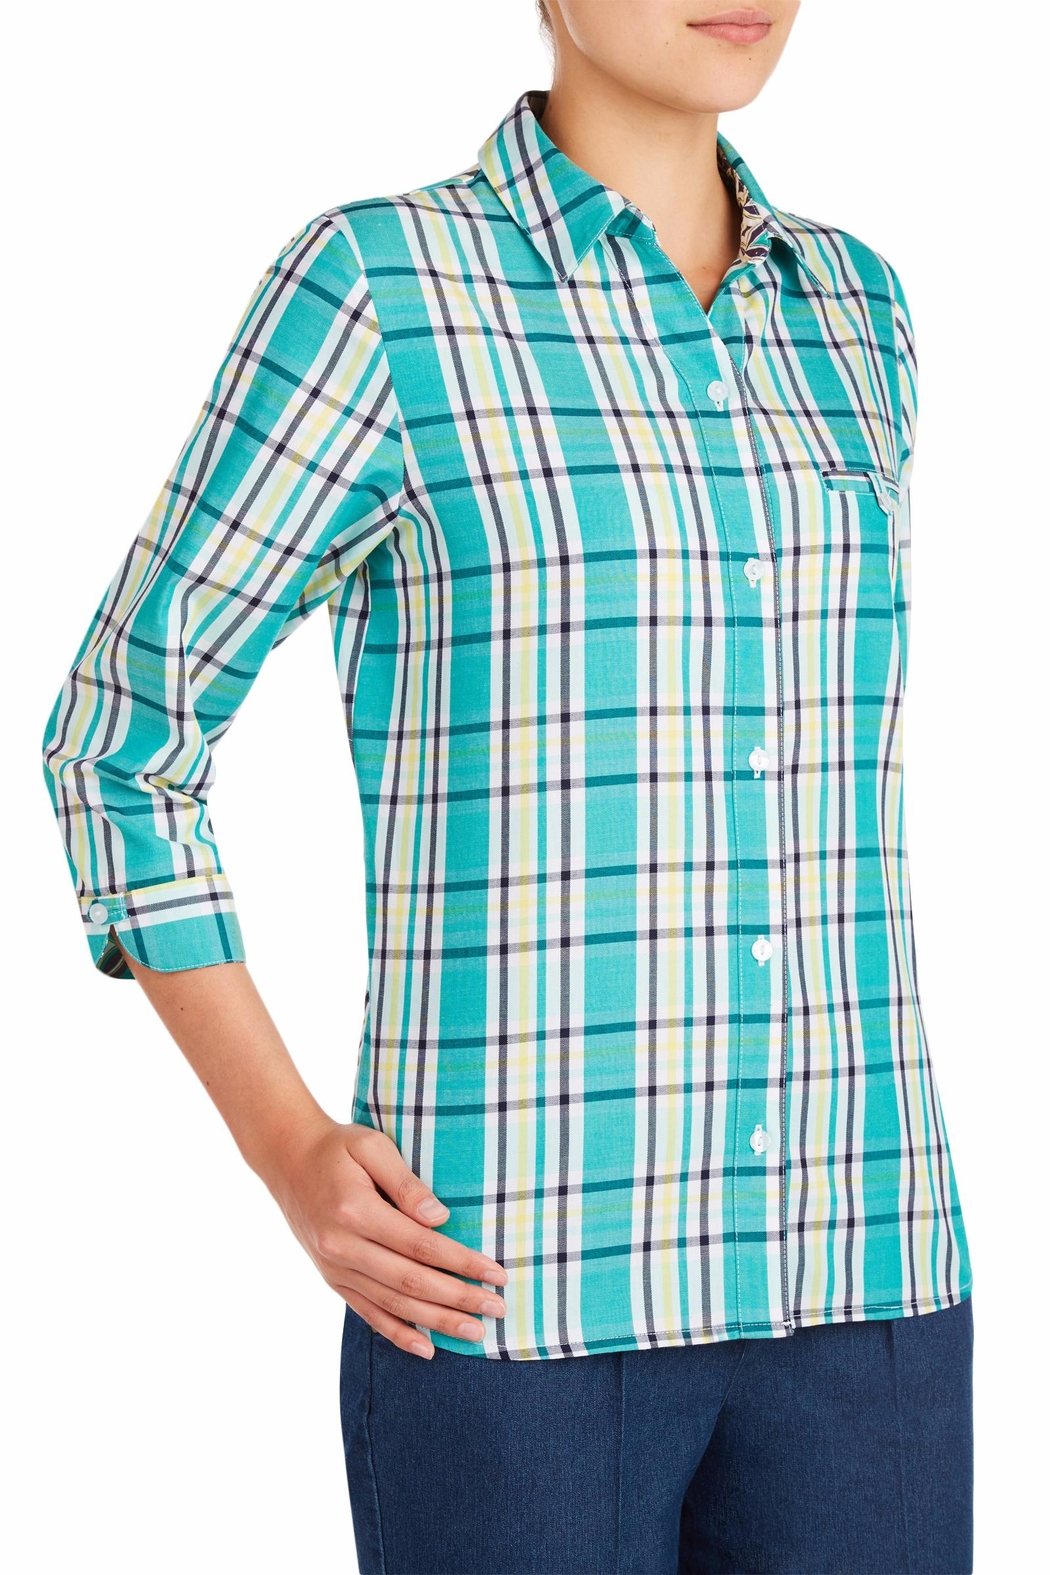 Allison Daley Blue Plaid Blouse - Front Full Image